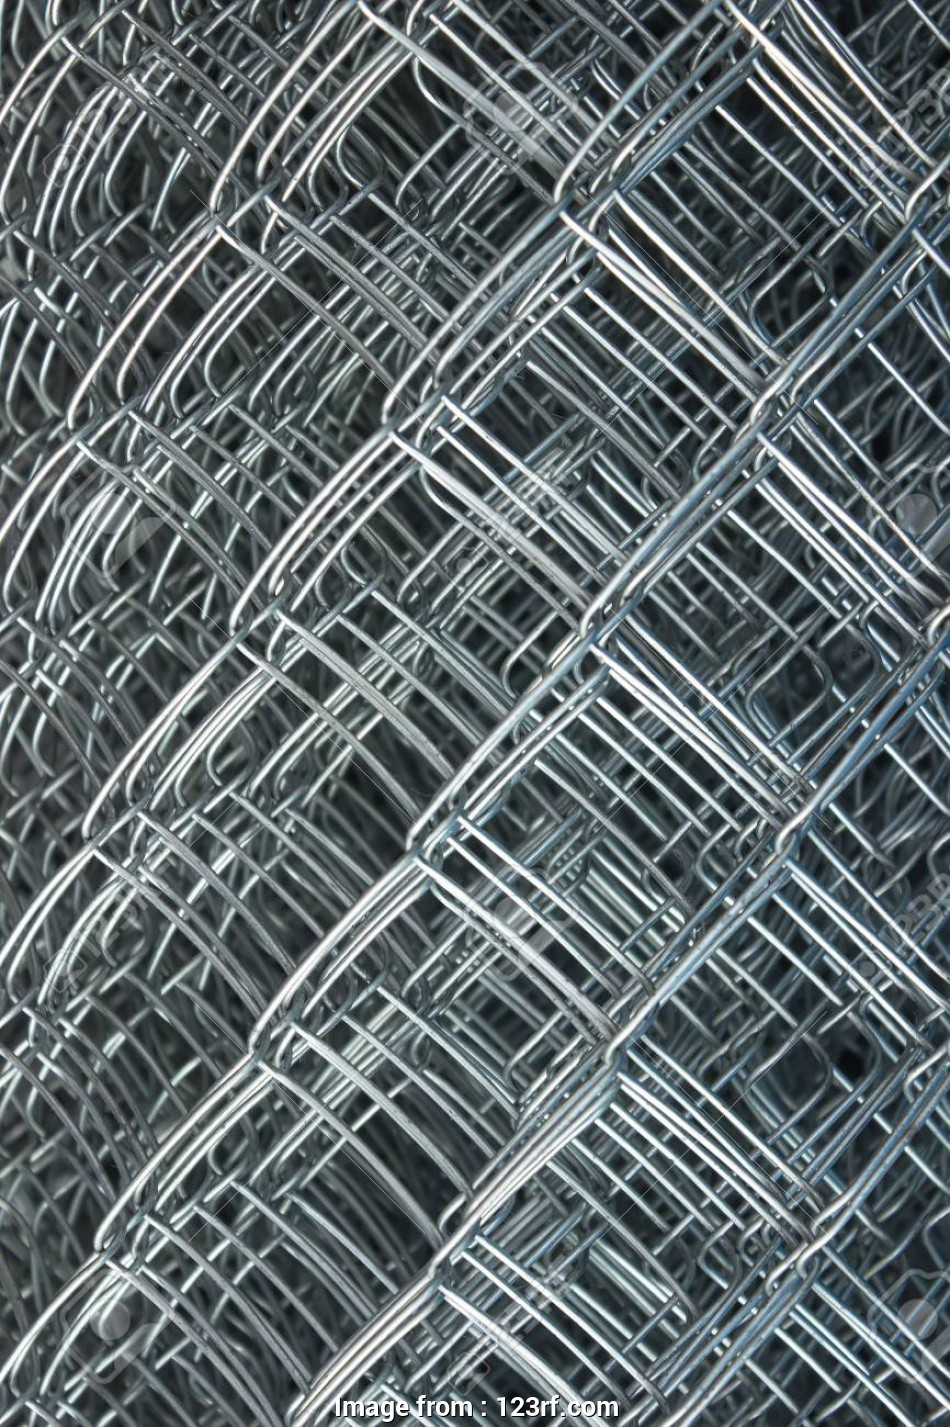 wire mesh netting Meshed fence, wire mesh, wire netting, rabitz, rolled fencing Stock Photo 11 Simple Wire Mesh Netting Solutions